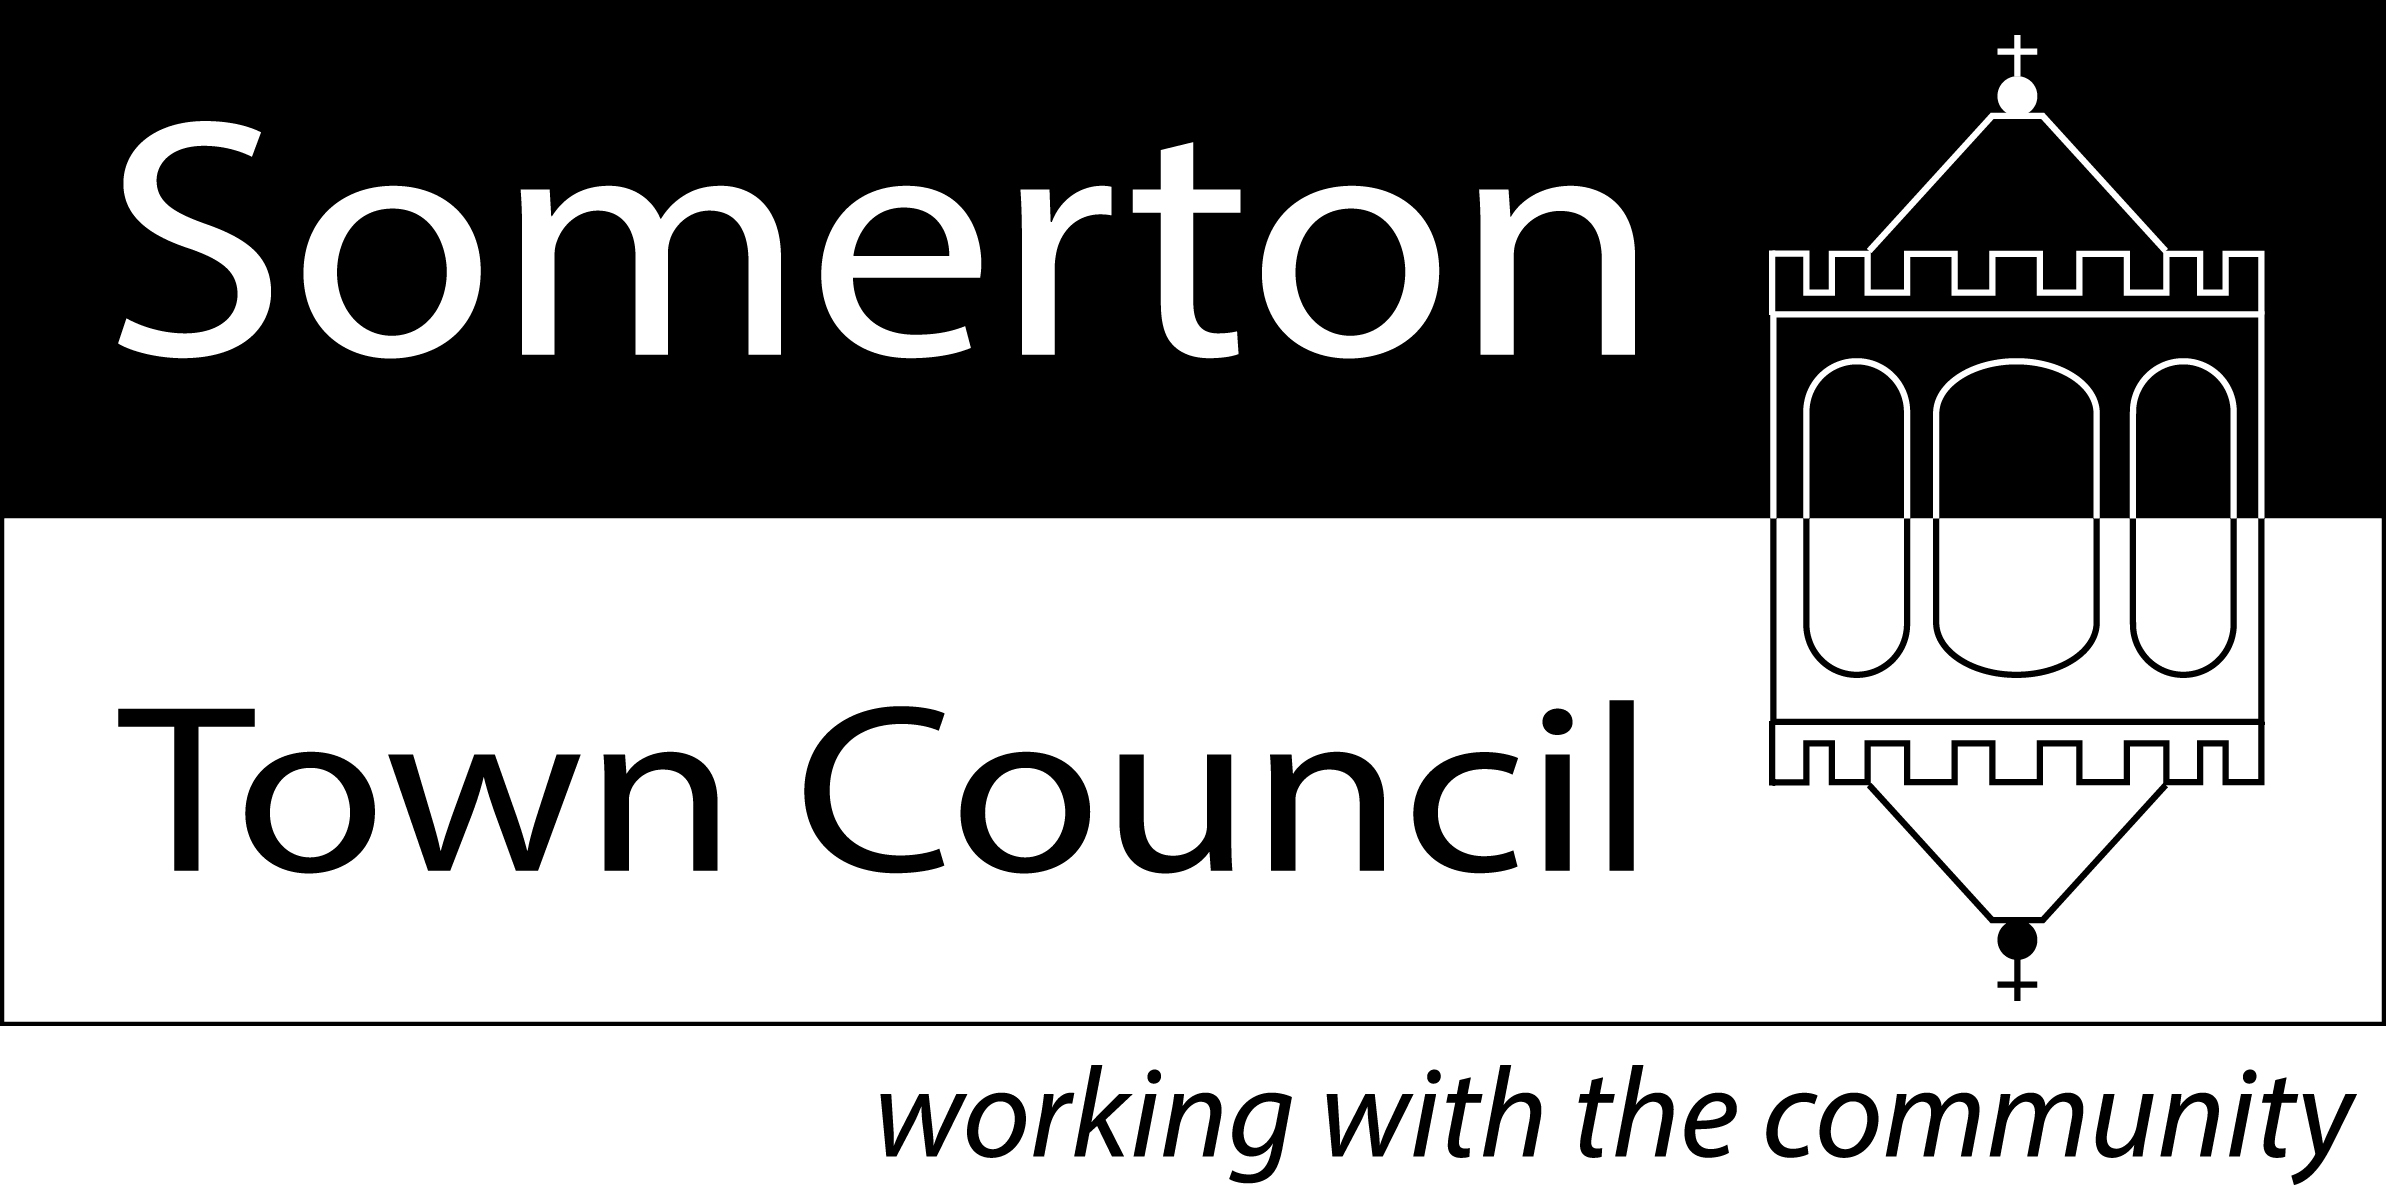 Somerton Town Council